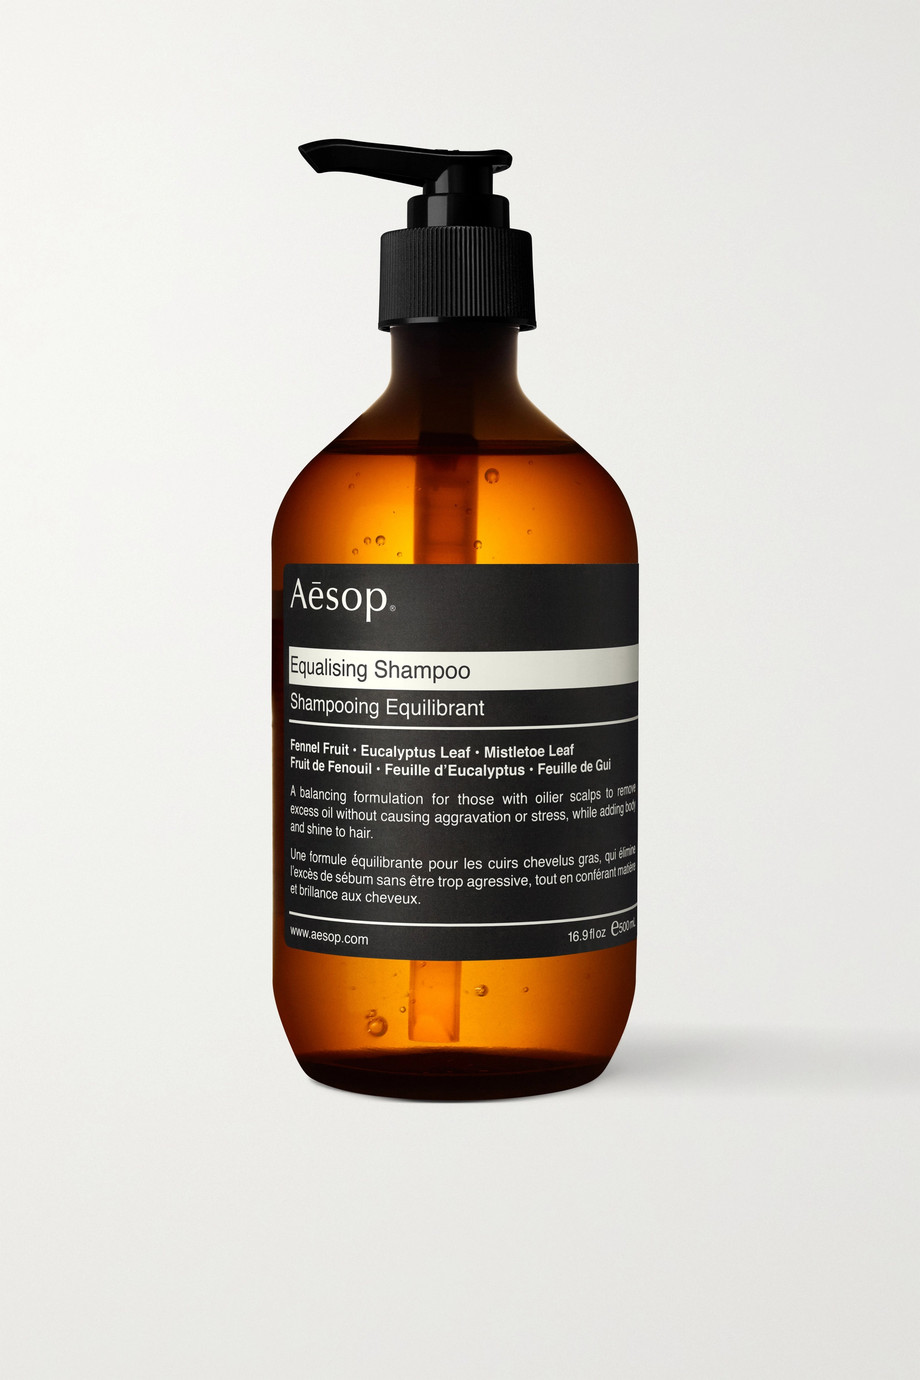 Aesop Shampooing équilibrant, 500 ml